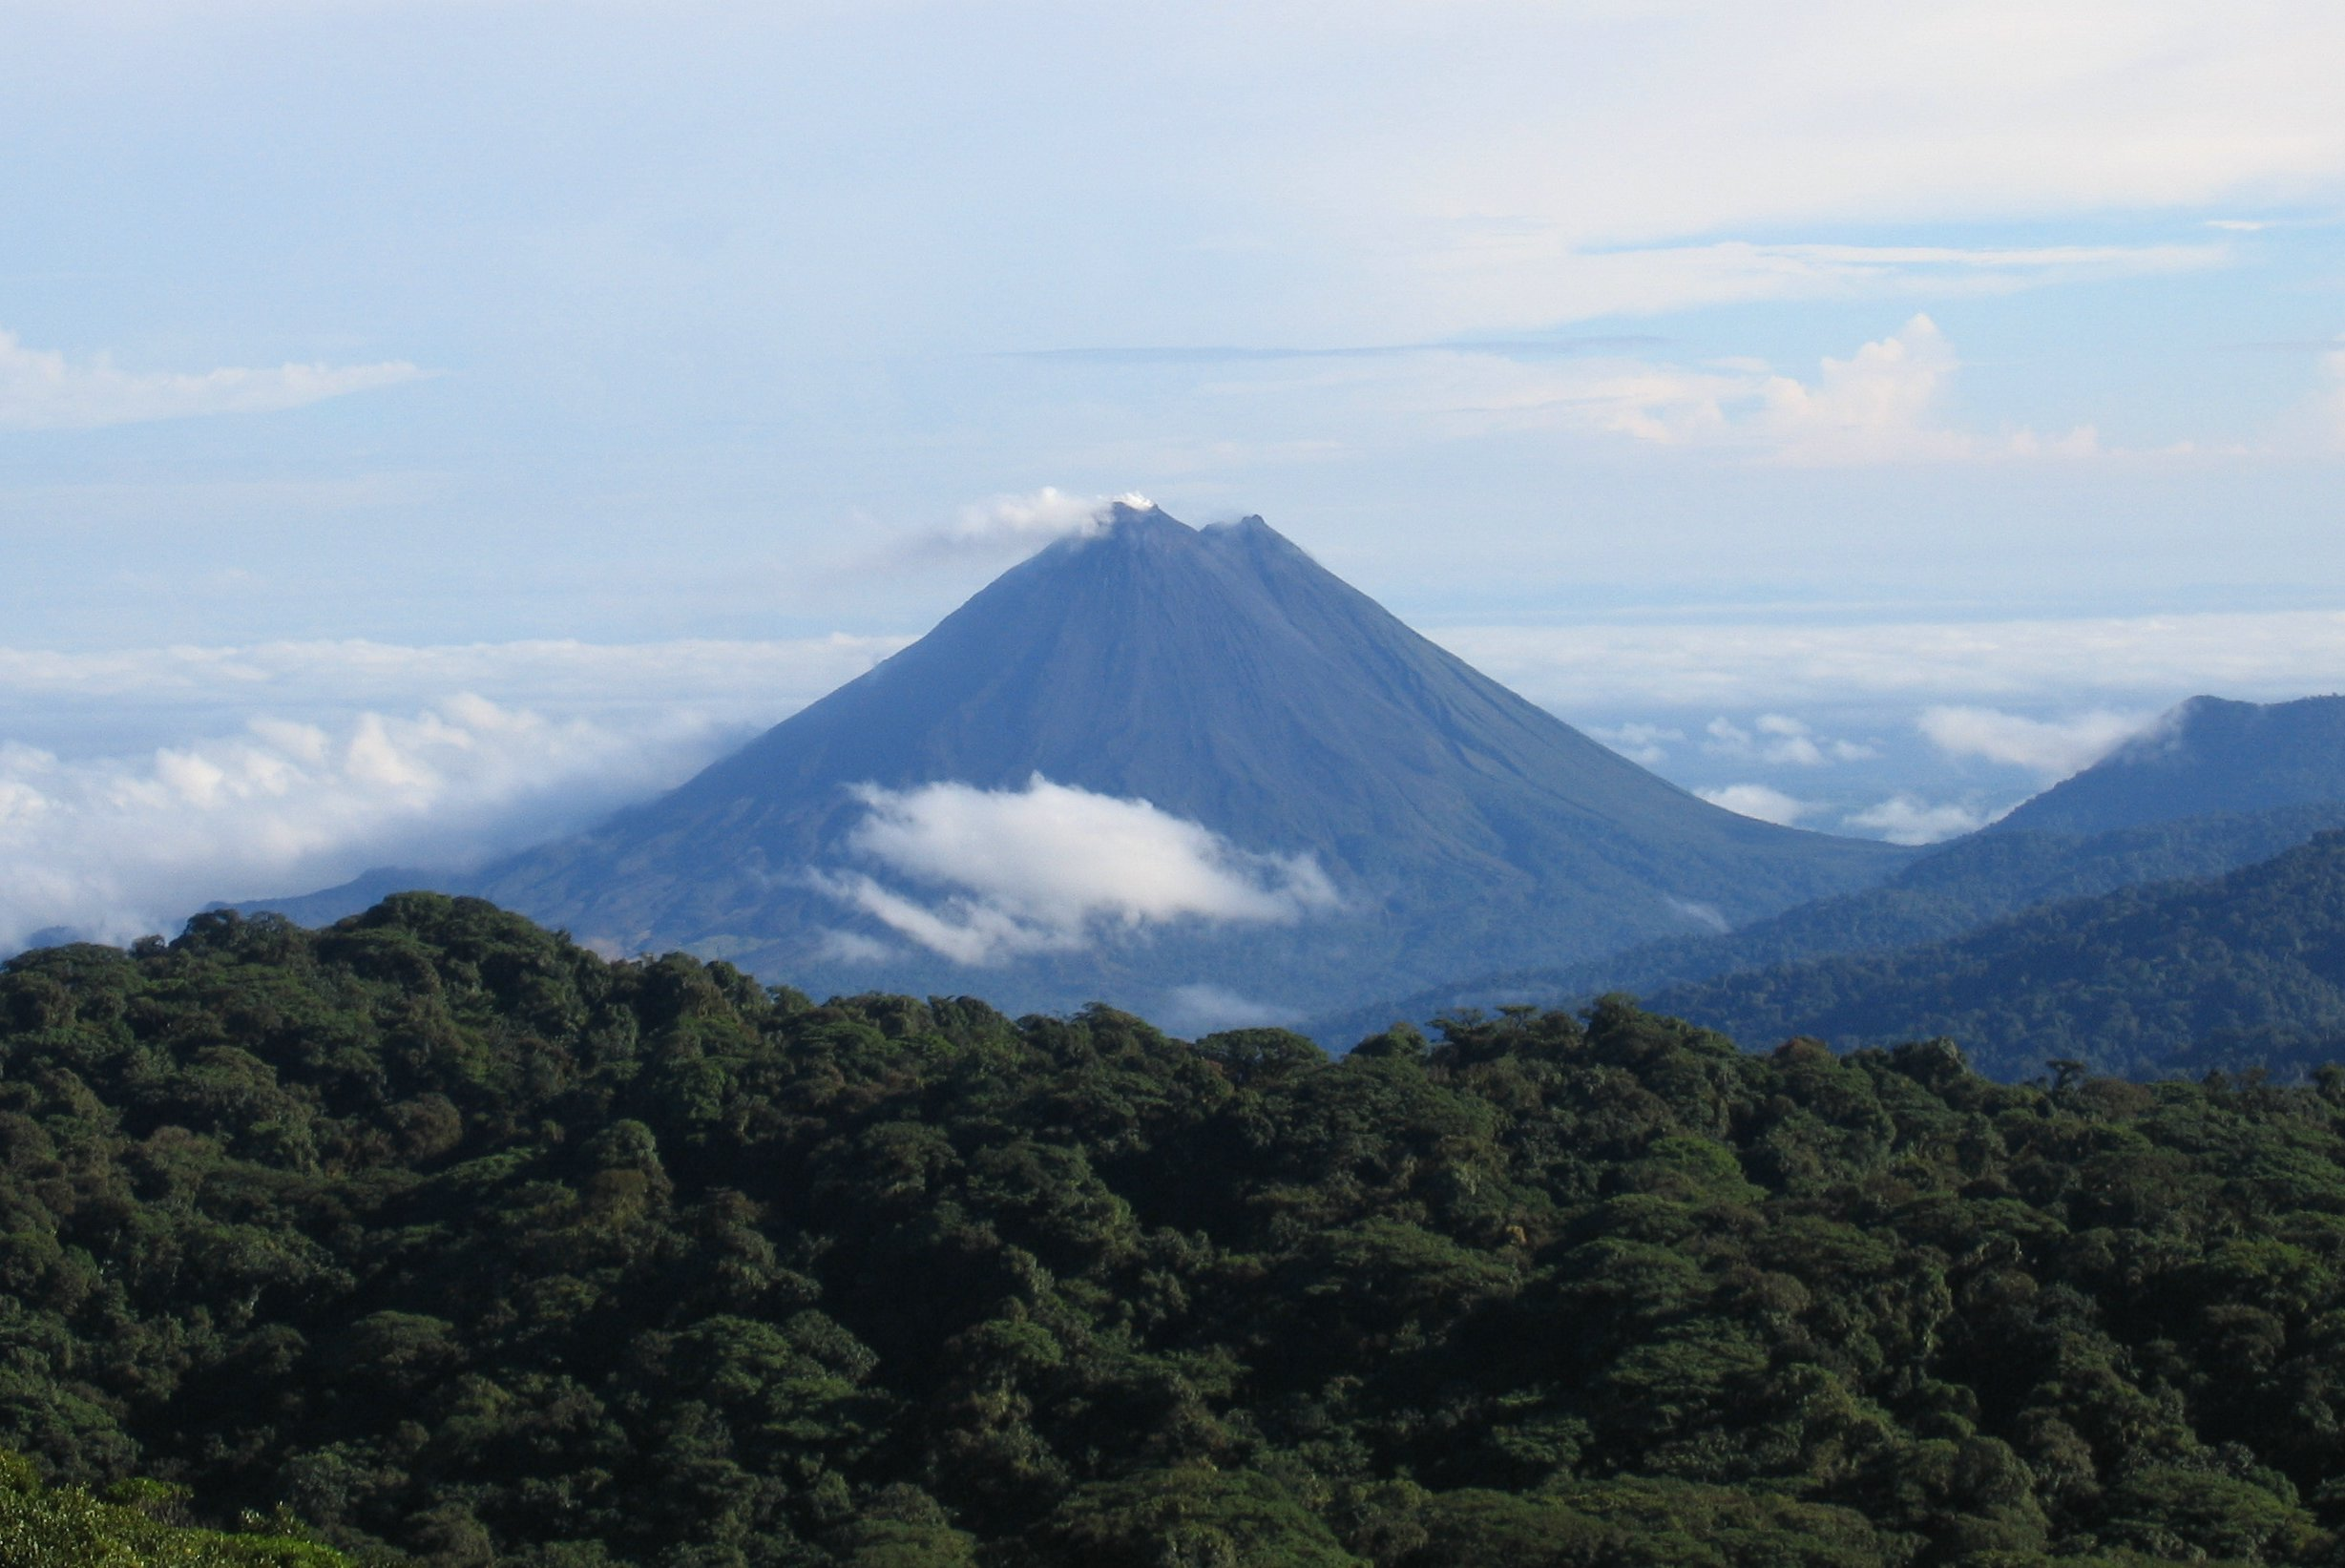 SEE: ARENAL VOLCANO NATIONAL PARK